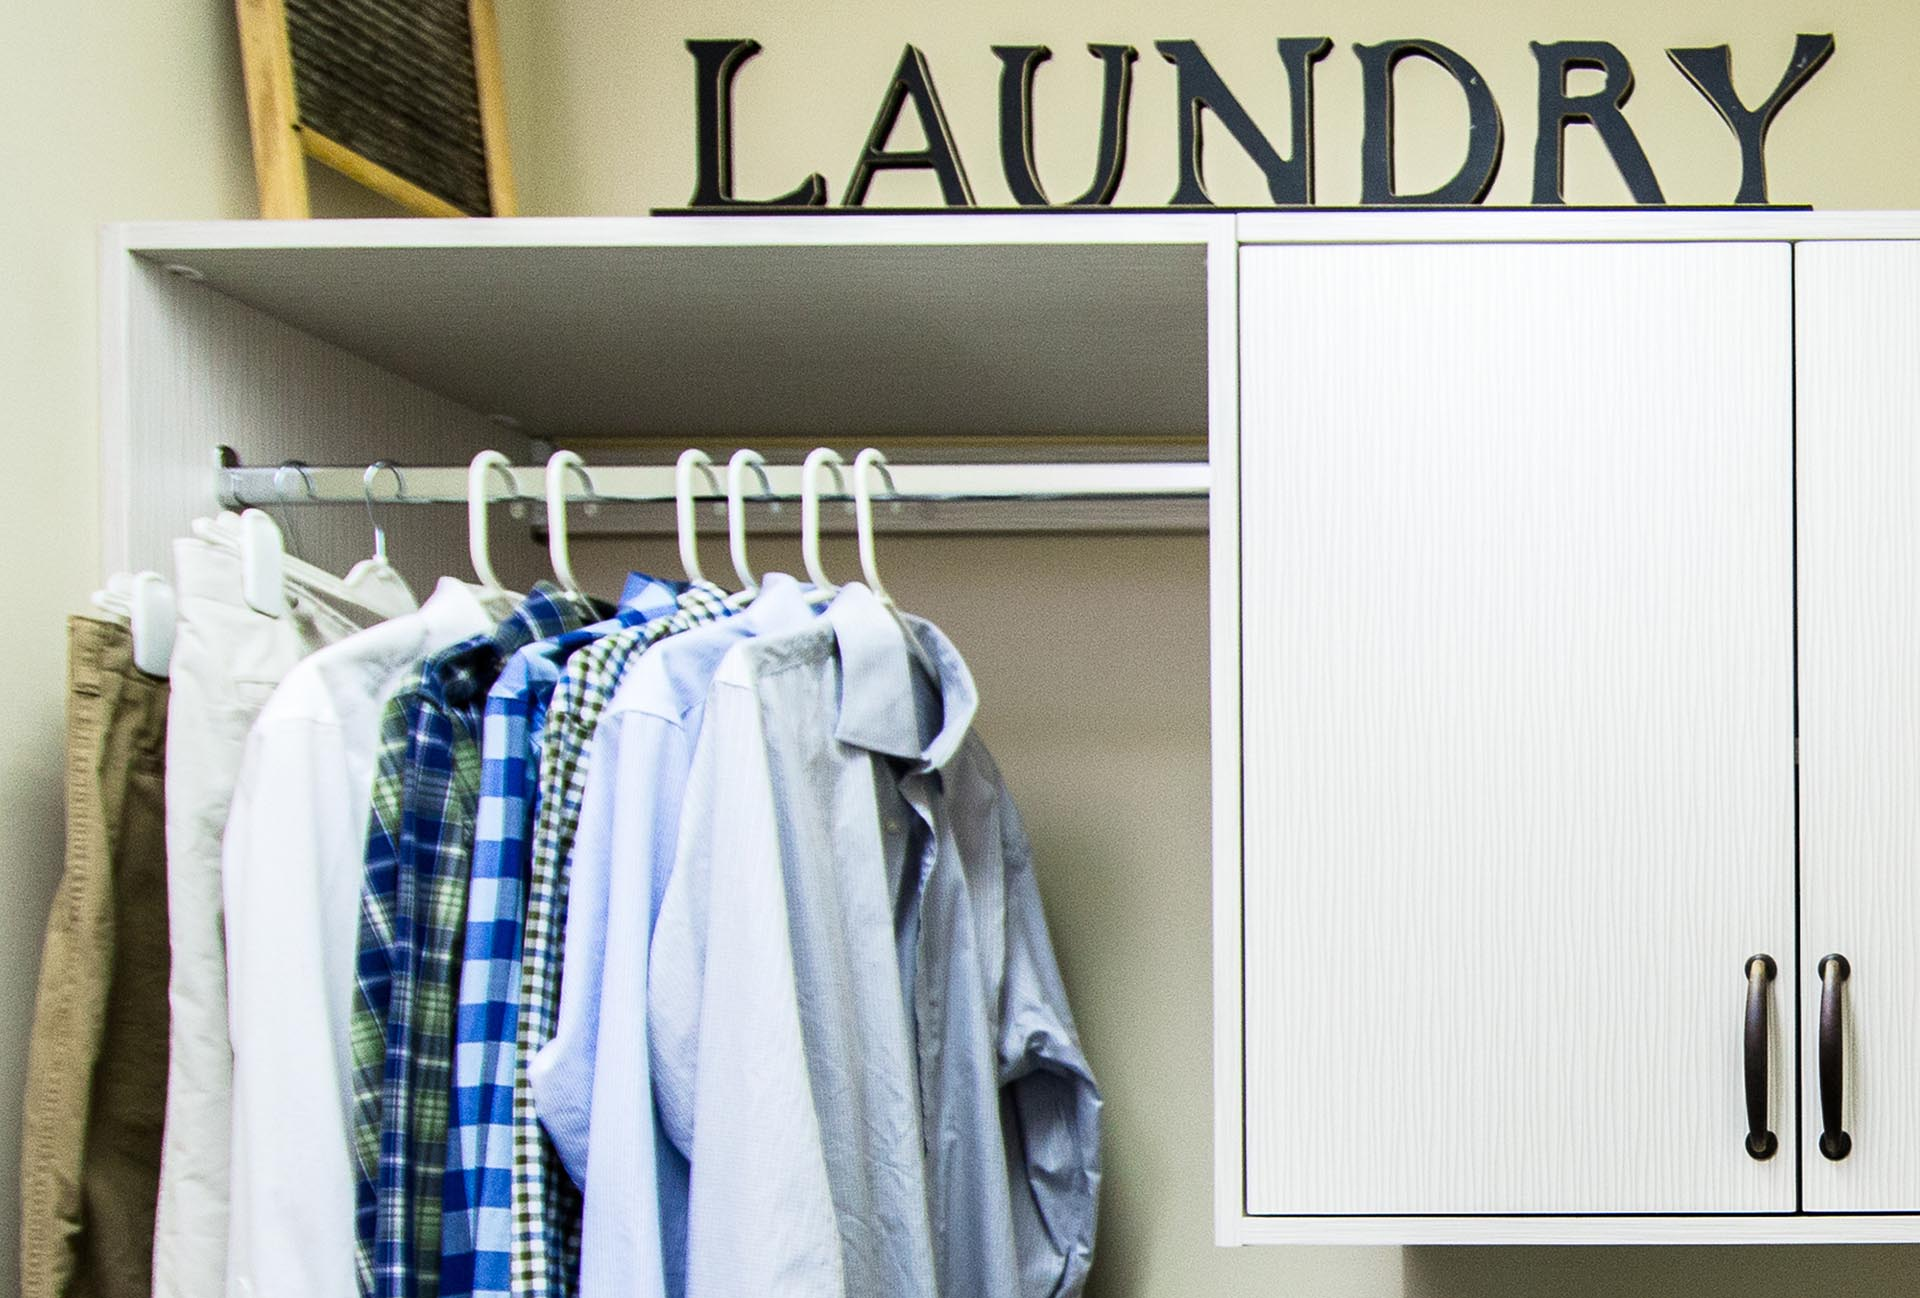 Laundry_CT2A2163_FeaturedImage